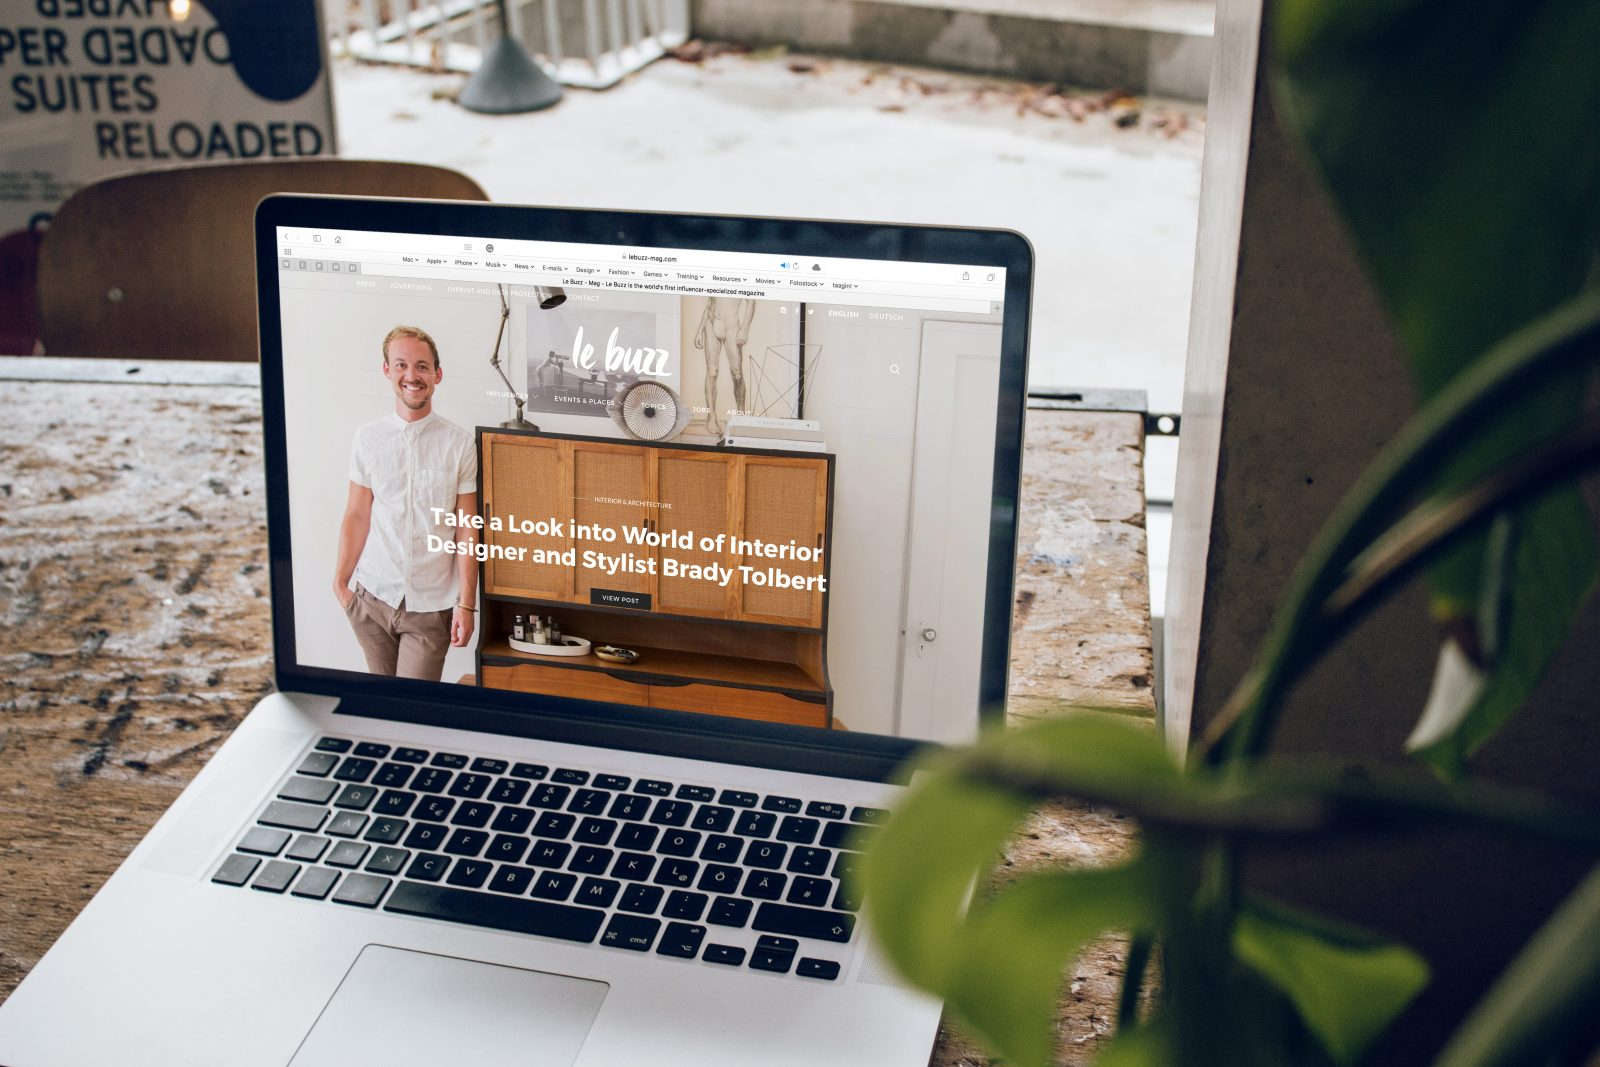 A laptop screen showing the homepage of an online shop